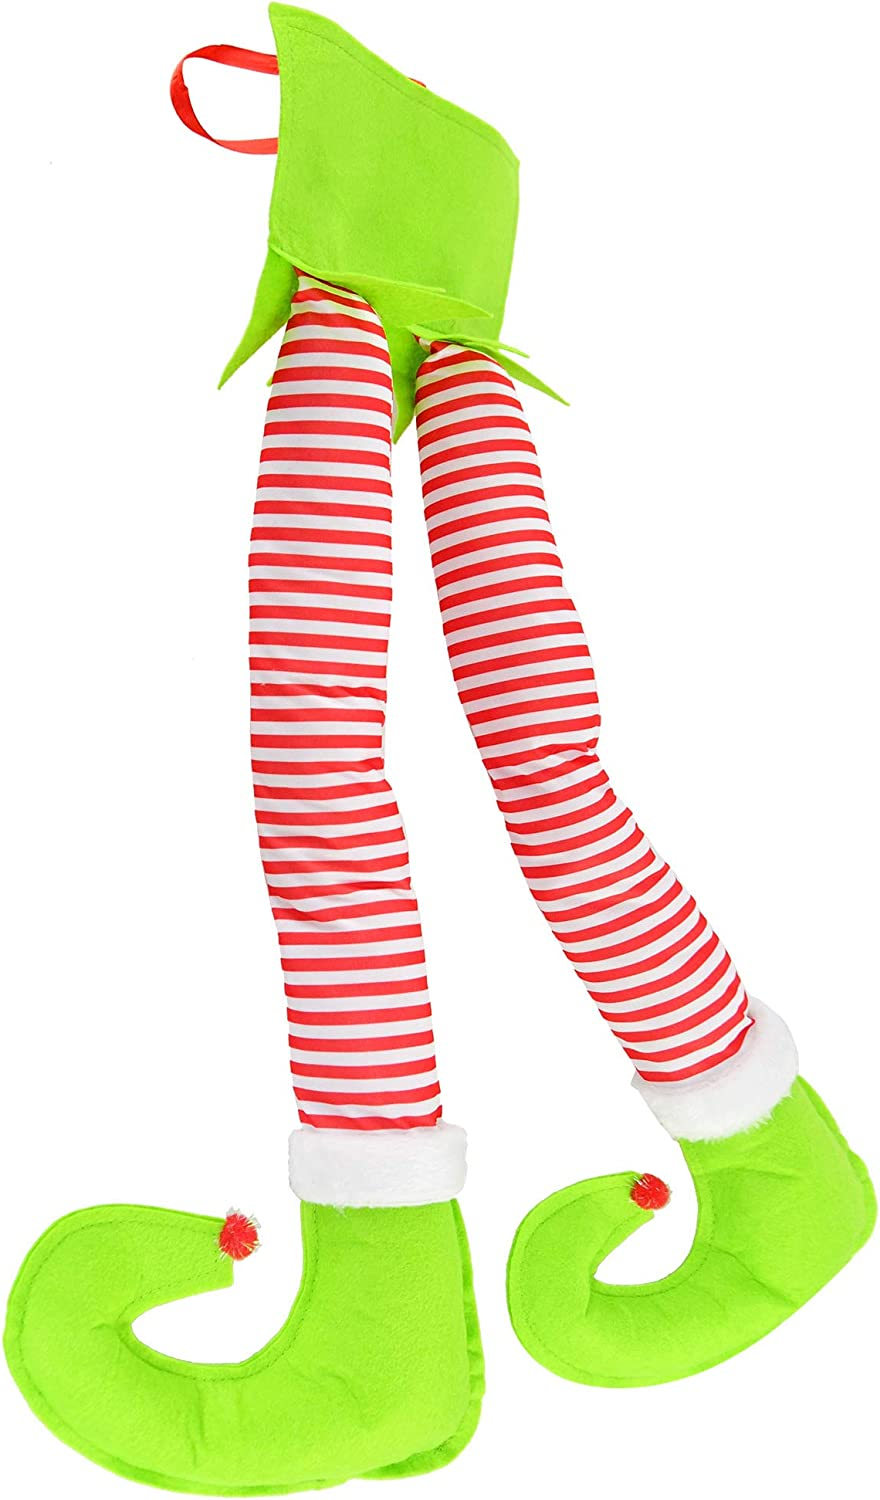 "Home-X Hanging Elf Legs, Christmas Home Decor, Festive Christmas Decorations for The Home or Car, 24"" L x 8"" W x 2"" H, Red/White/Green"